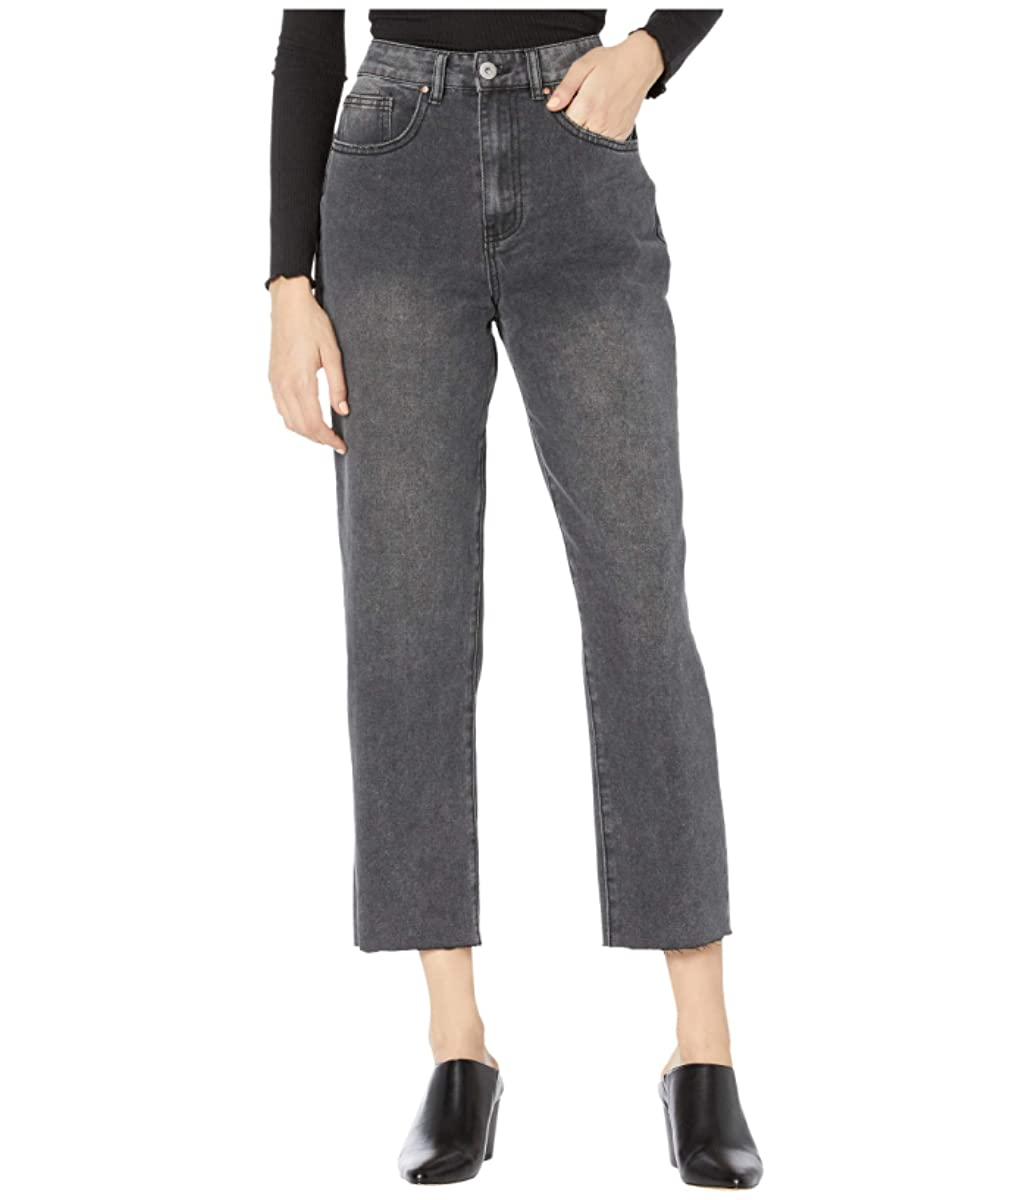 COTTON ON Teen Straight Leg Jeans in Super Wash Black (9356704856216)